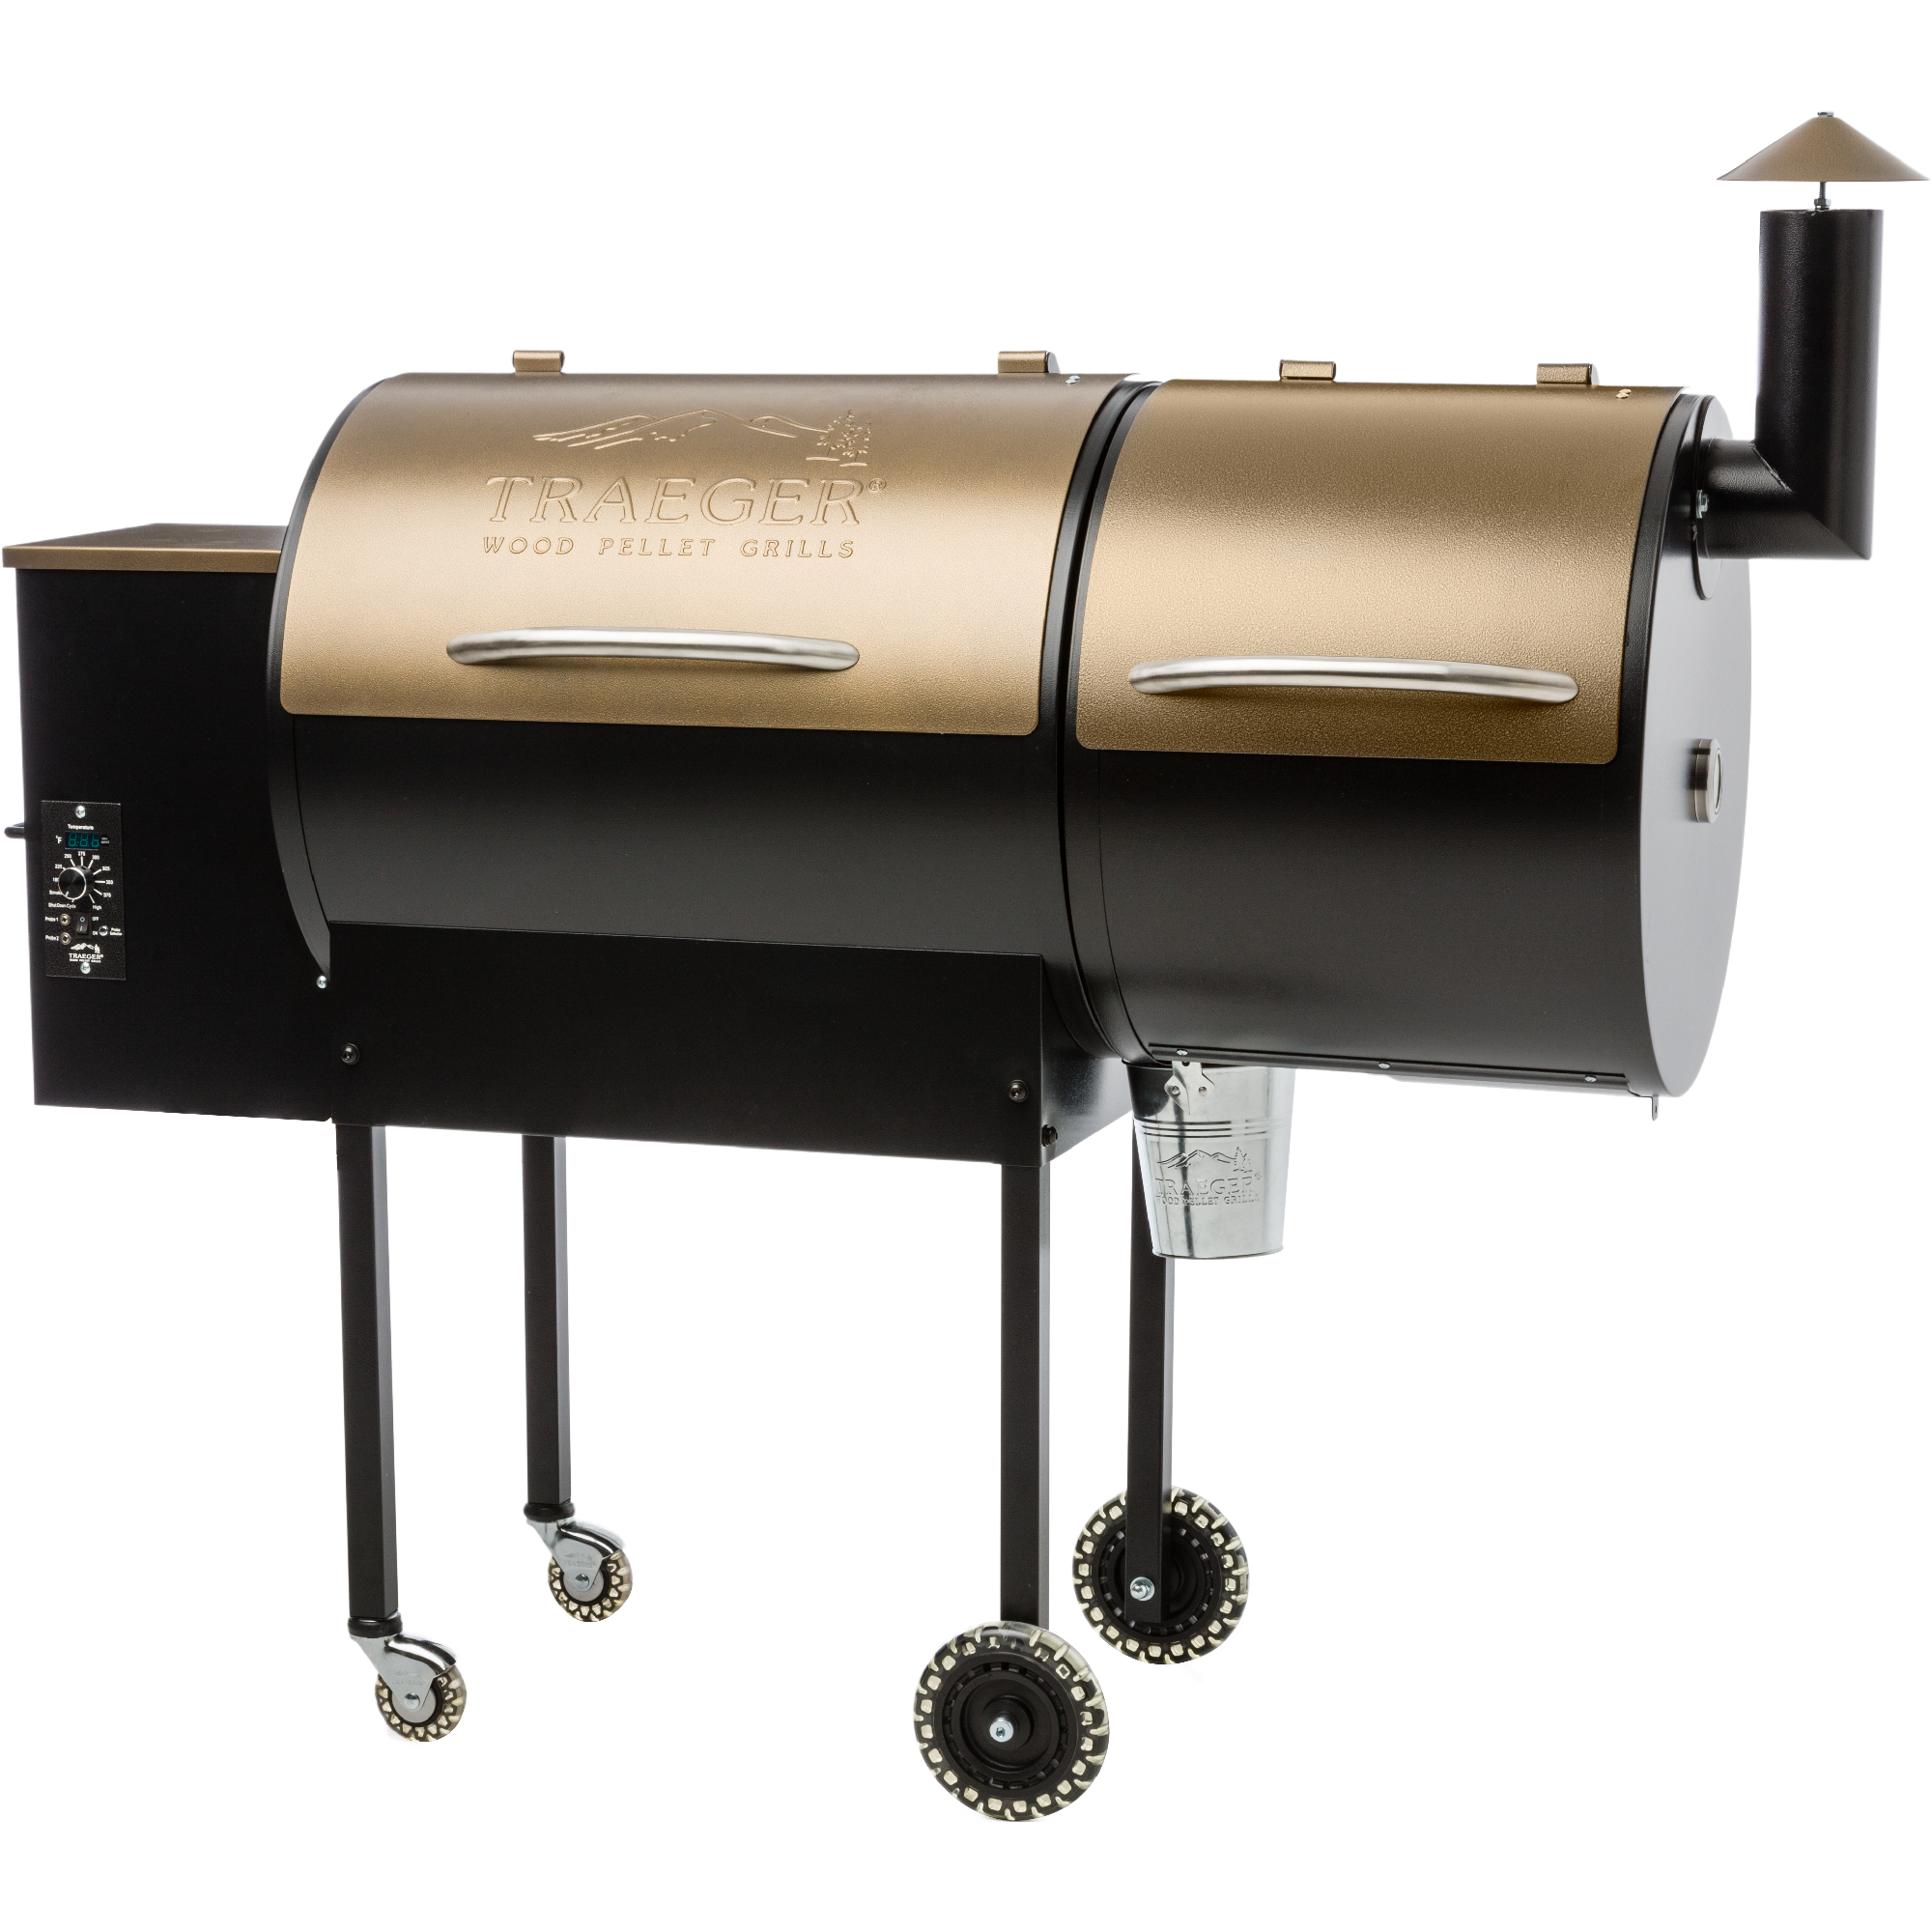 Cold smoker grill accessory traeger wood fired grills for Traeger smoker